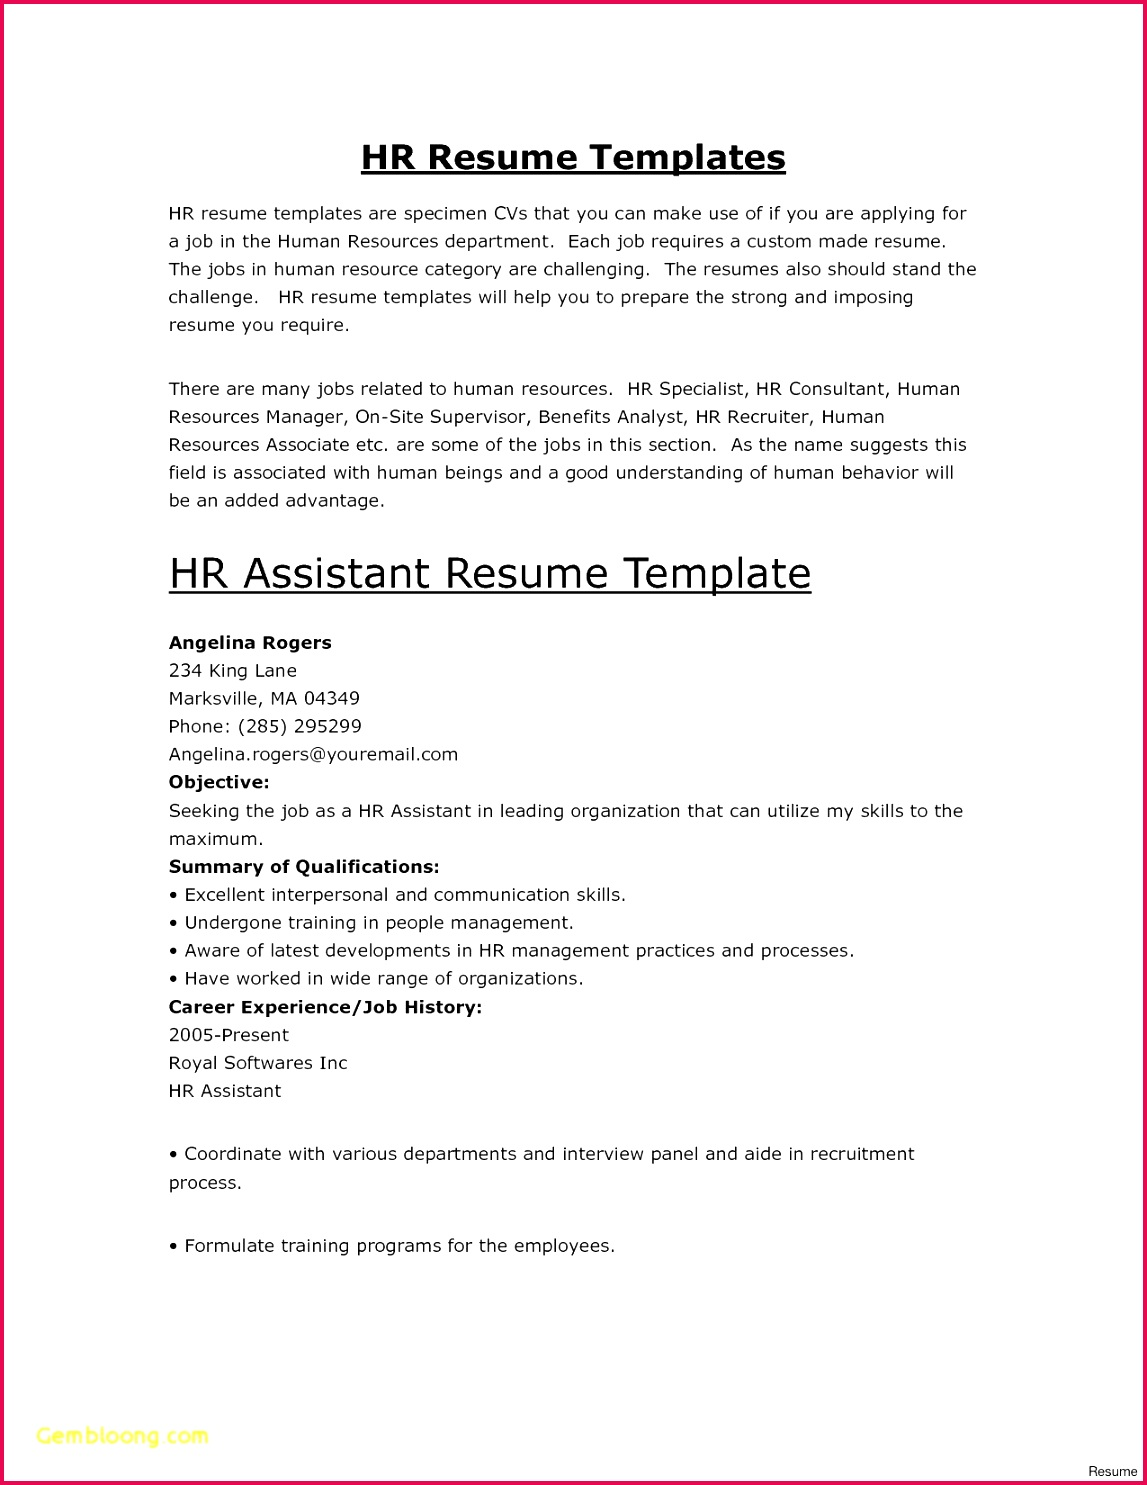 letter of good conduct template cover letter for resume template elegant awesome pr resume template elegant dictionary template 0d archives 9q